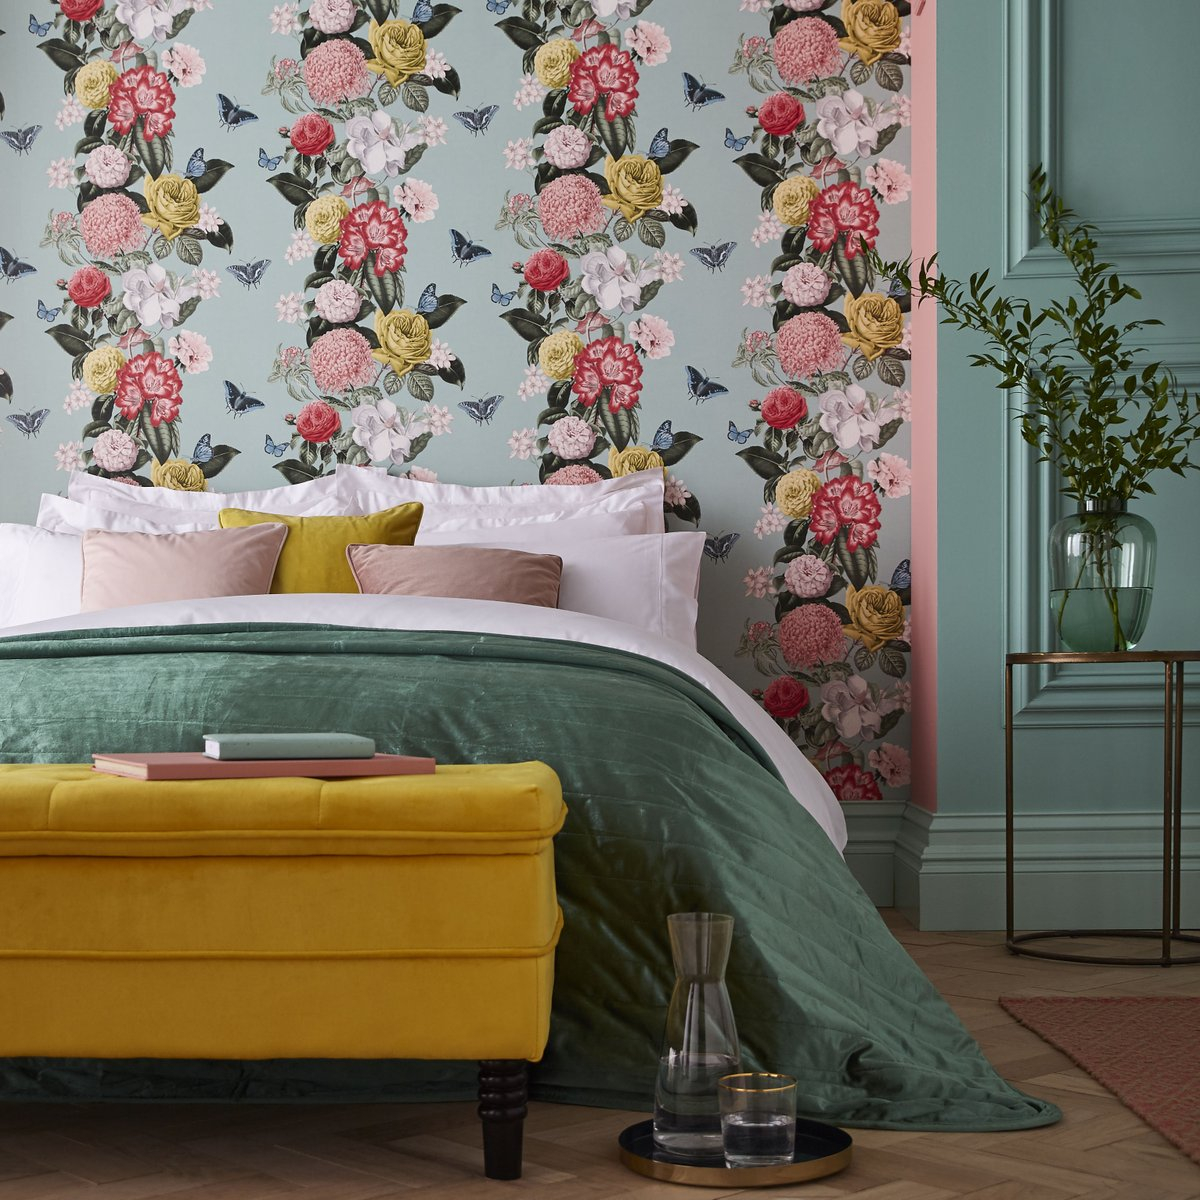 Botanical Prints Bloomsbury Neo Mint wallpaper from Graham & Green